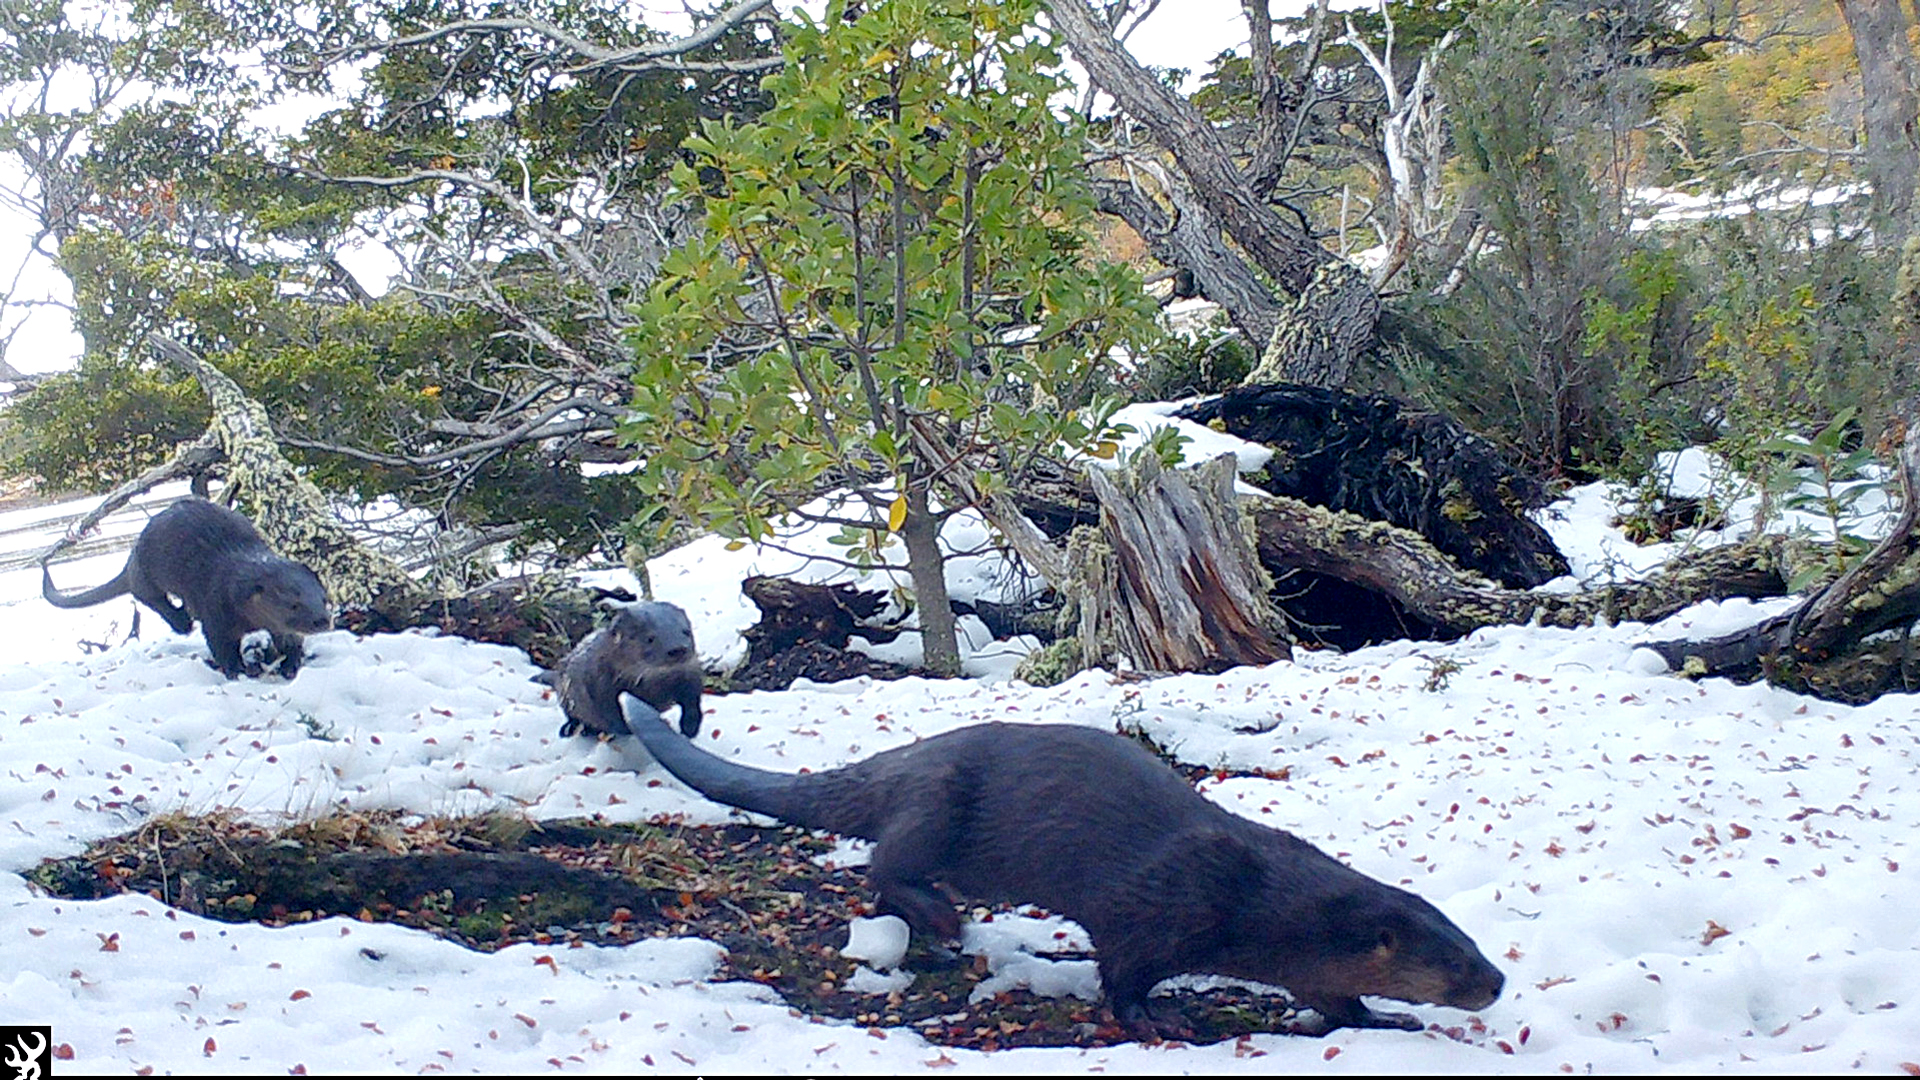 VIDEO: Scientists Battle To Save Critically Endangered Argie Otter With Only 250 Of The Species Left